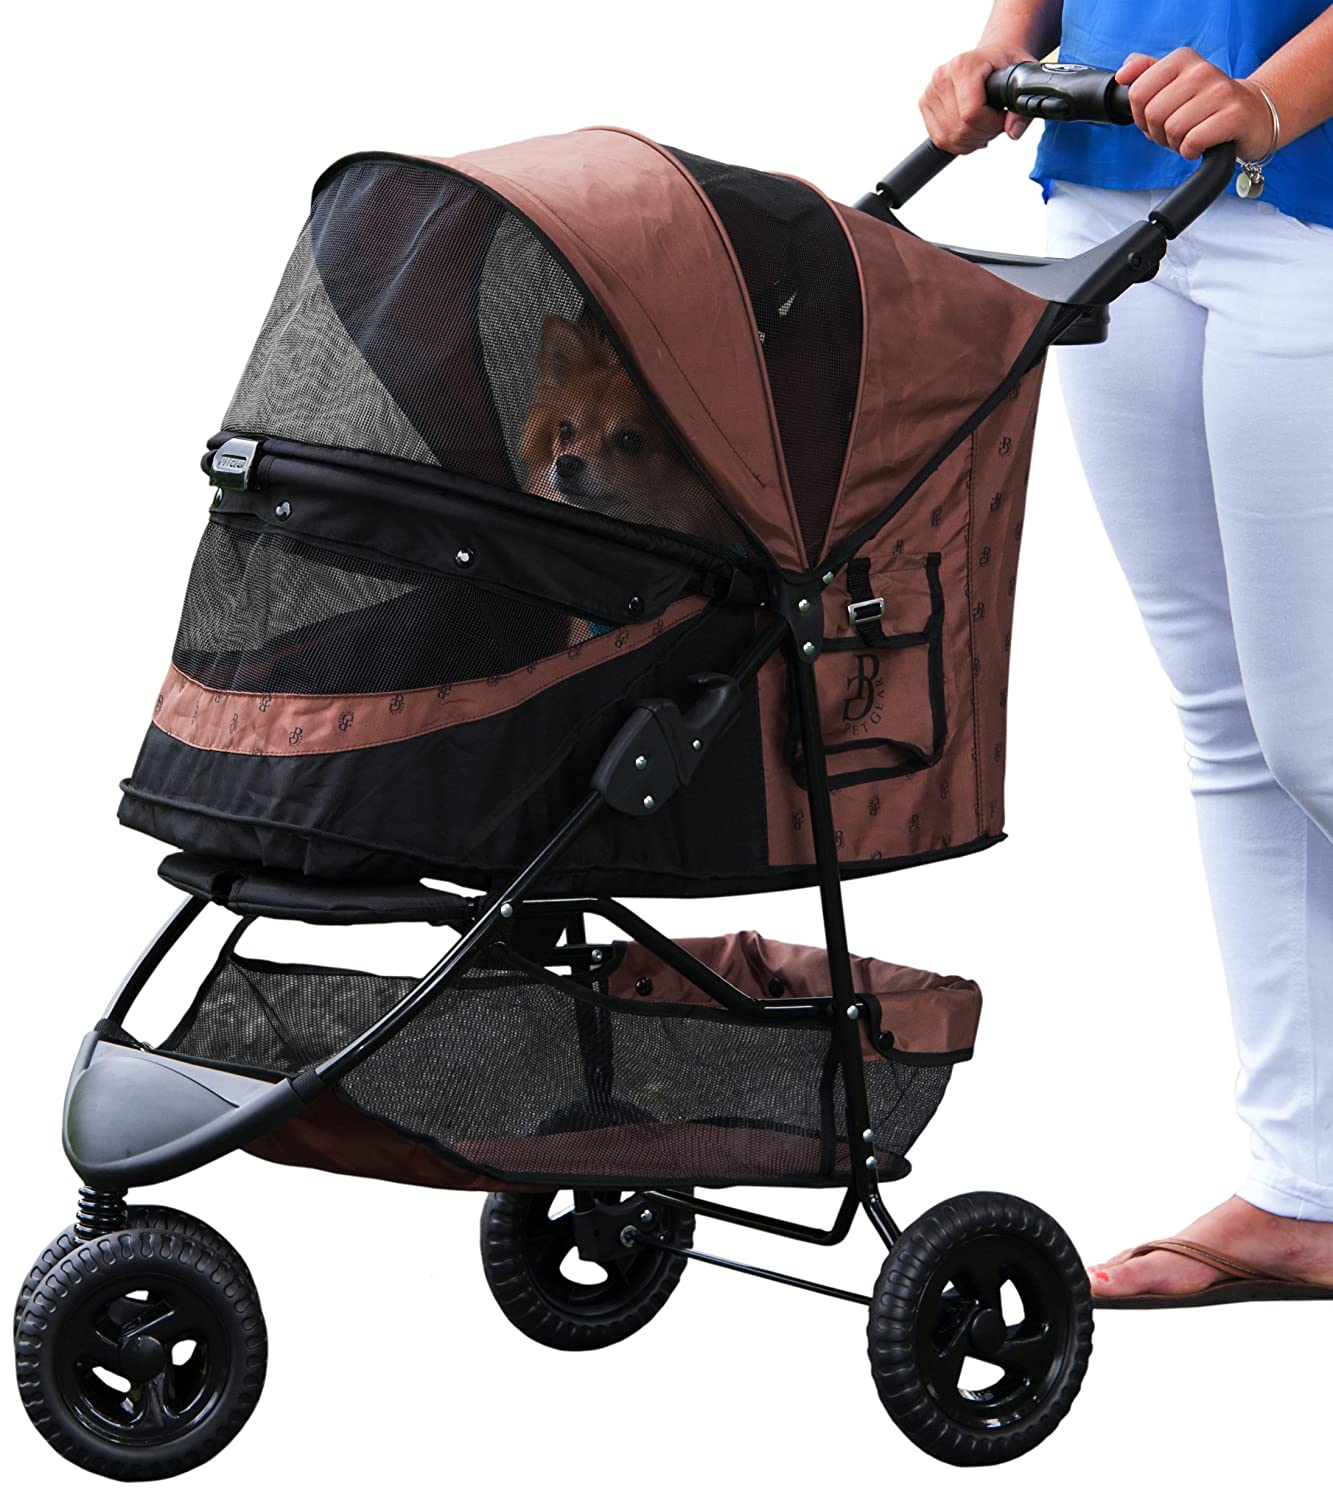 Pet Gear No-Zip Special Edition Pet Stroller, Zipperless Entry, Brown Rear safety brakes/front shock absorbers